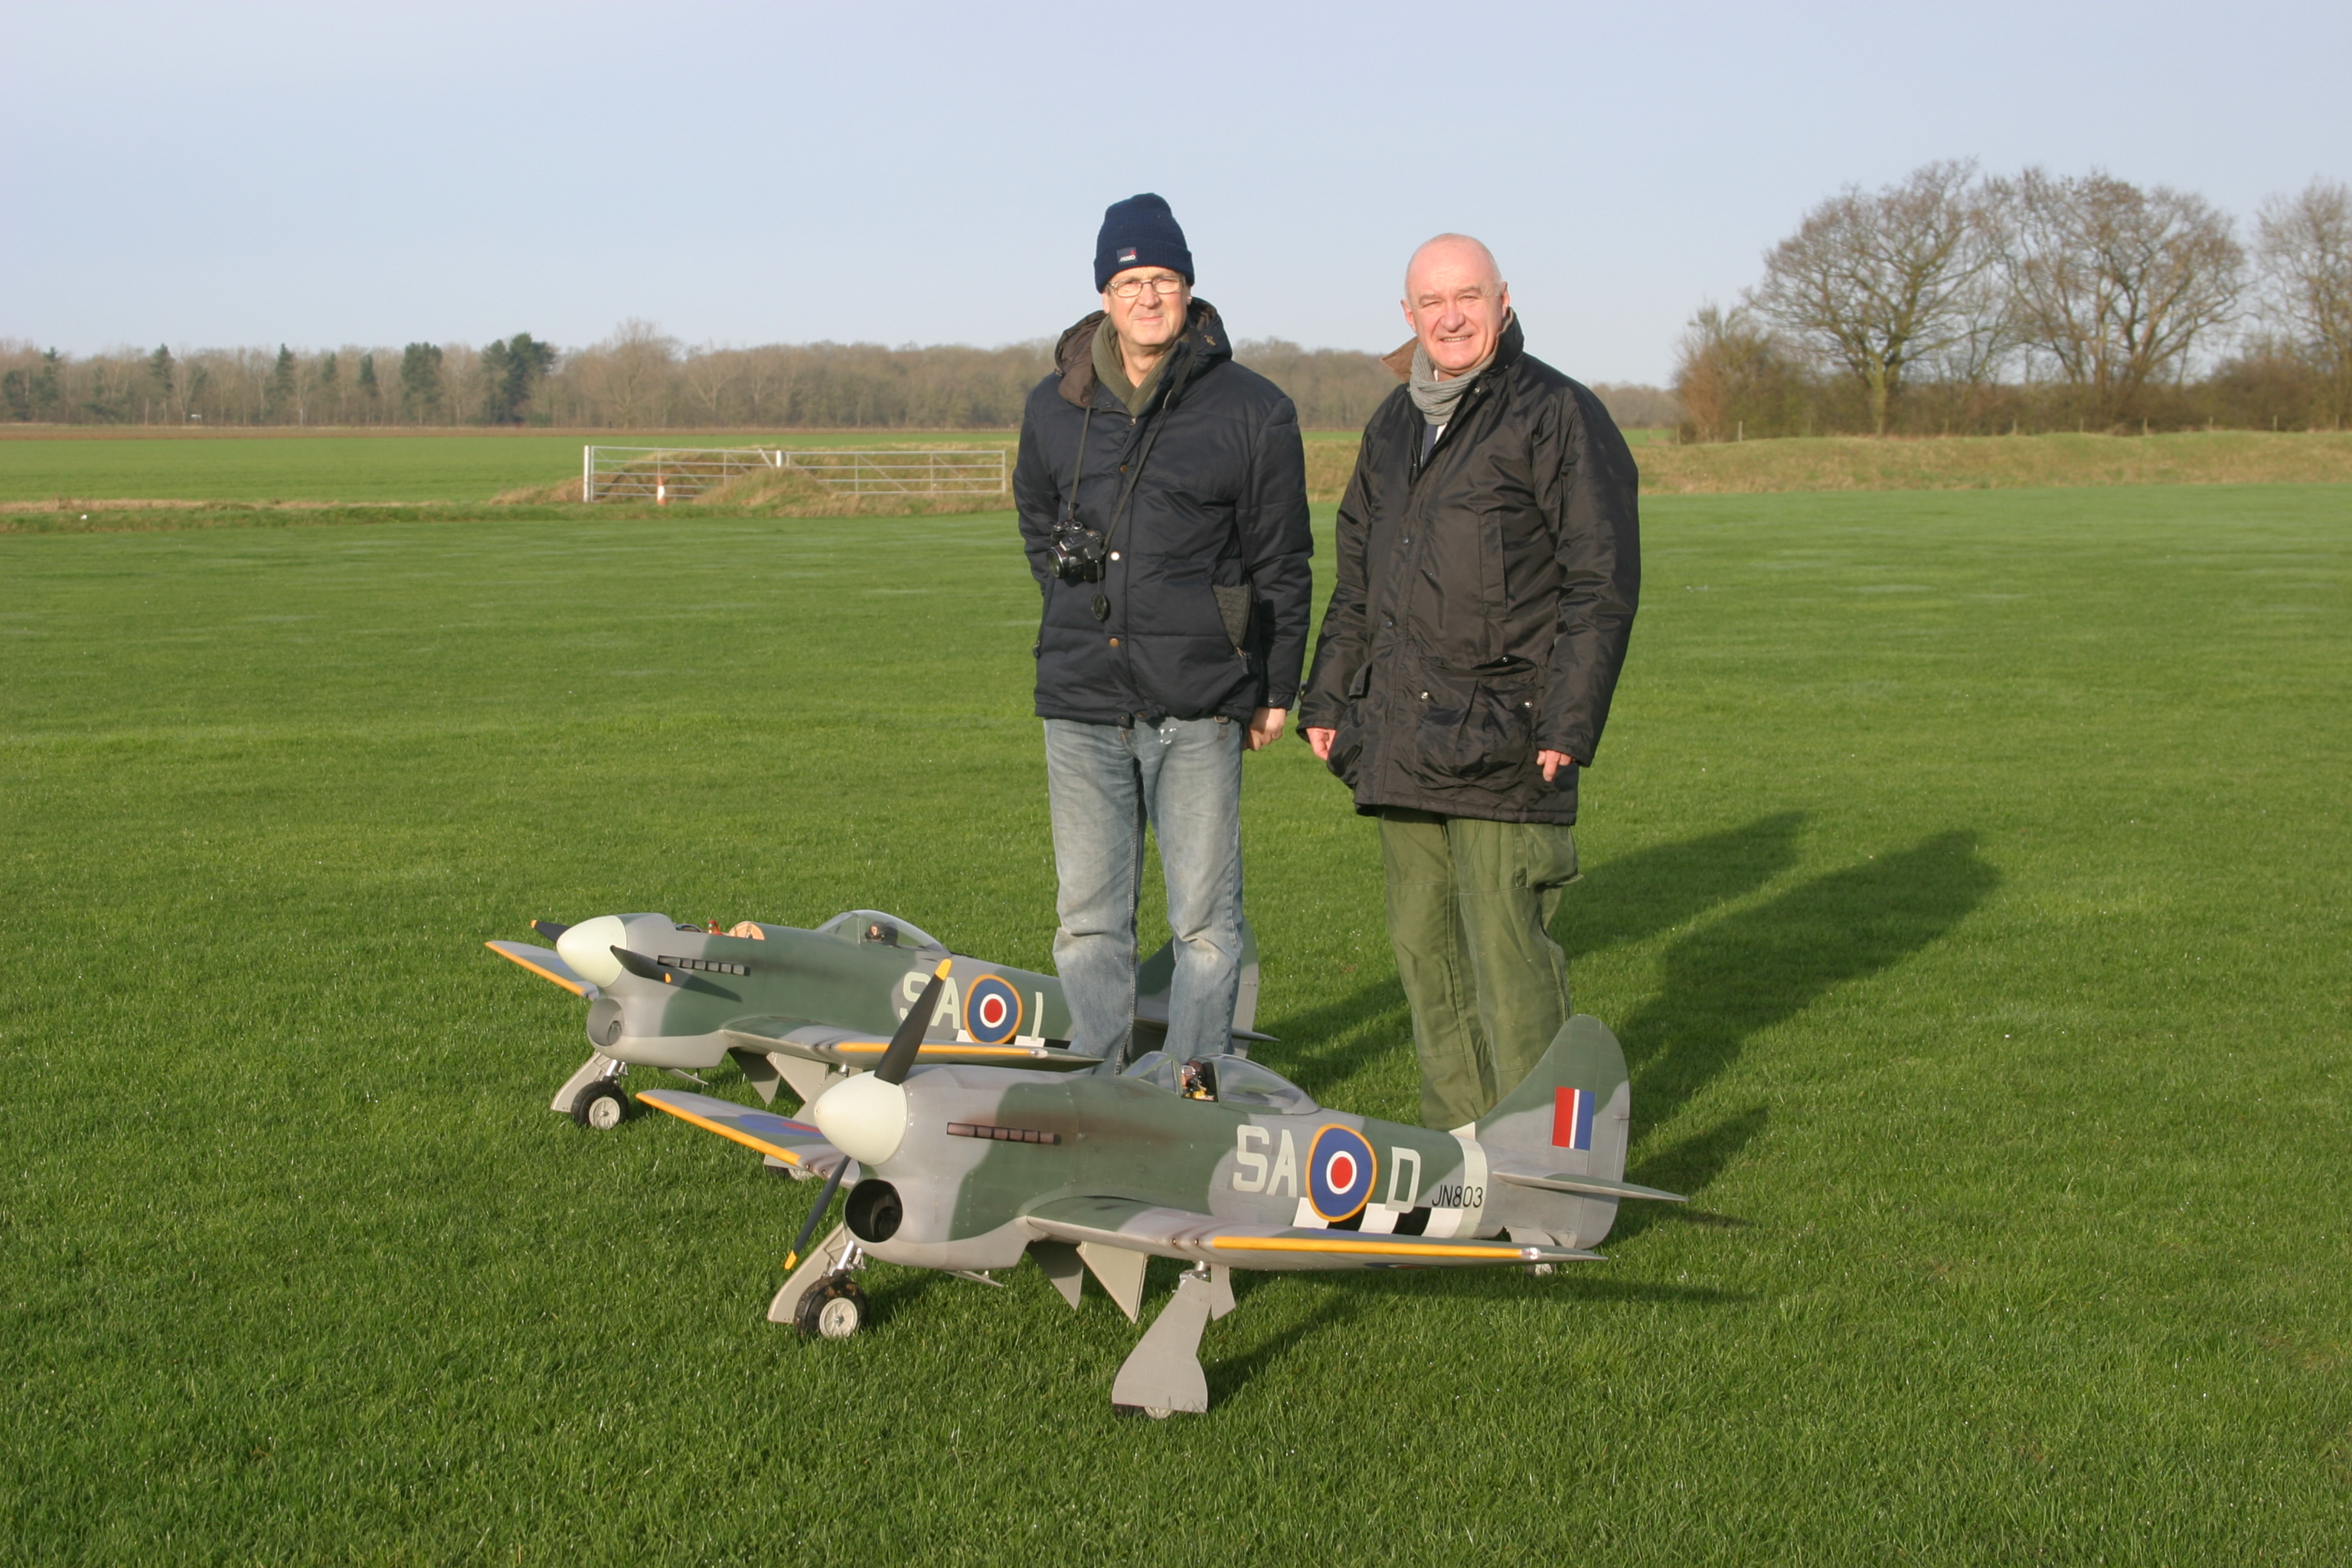 Hawker Tempest's - John and Tony